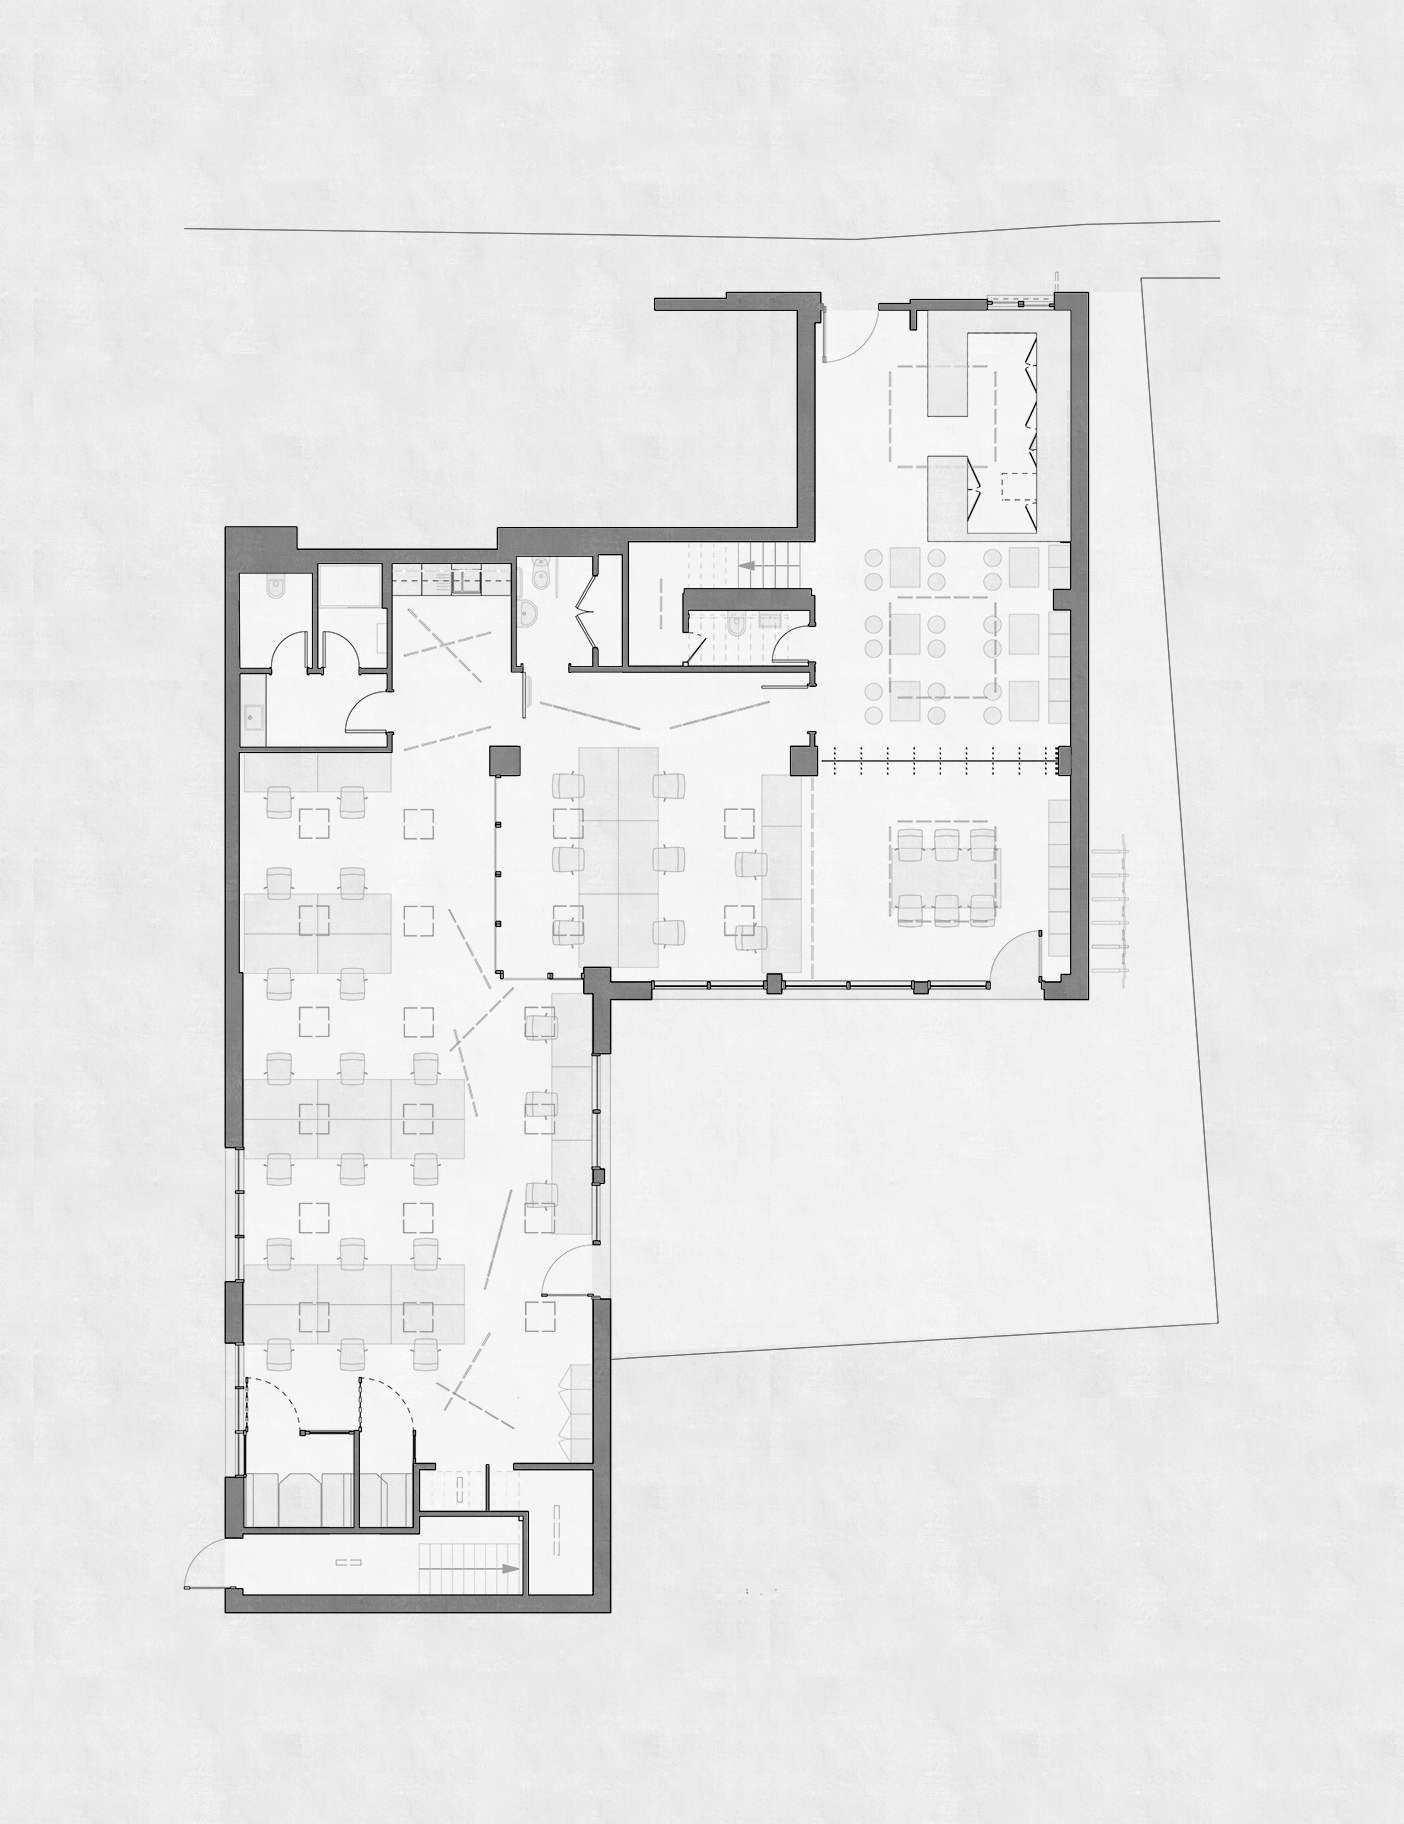 Aldworth James & Bond | Hackney Workspace plan drawing